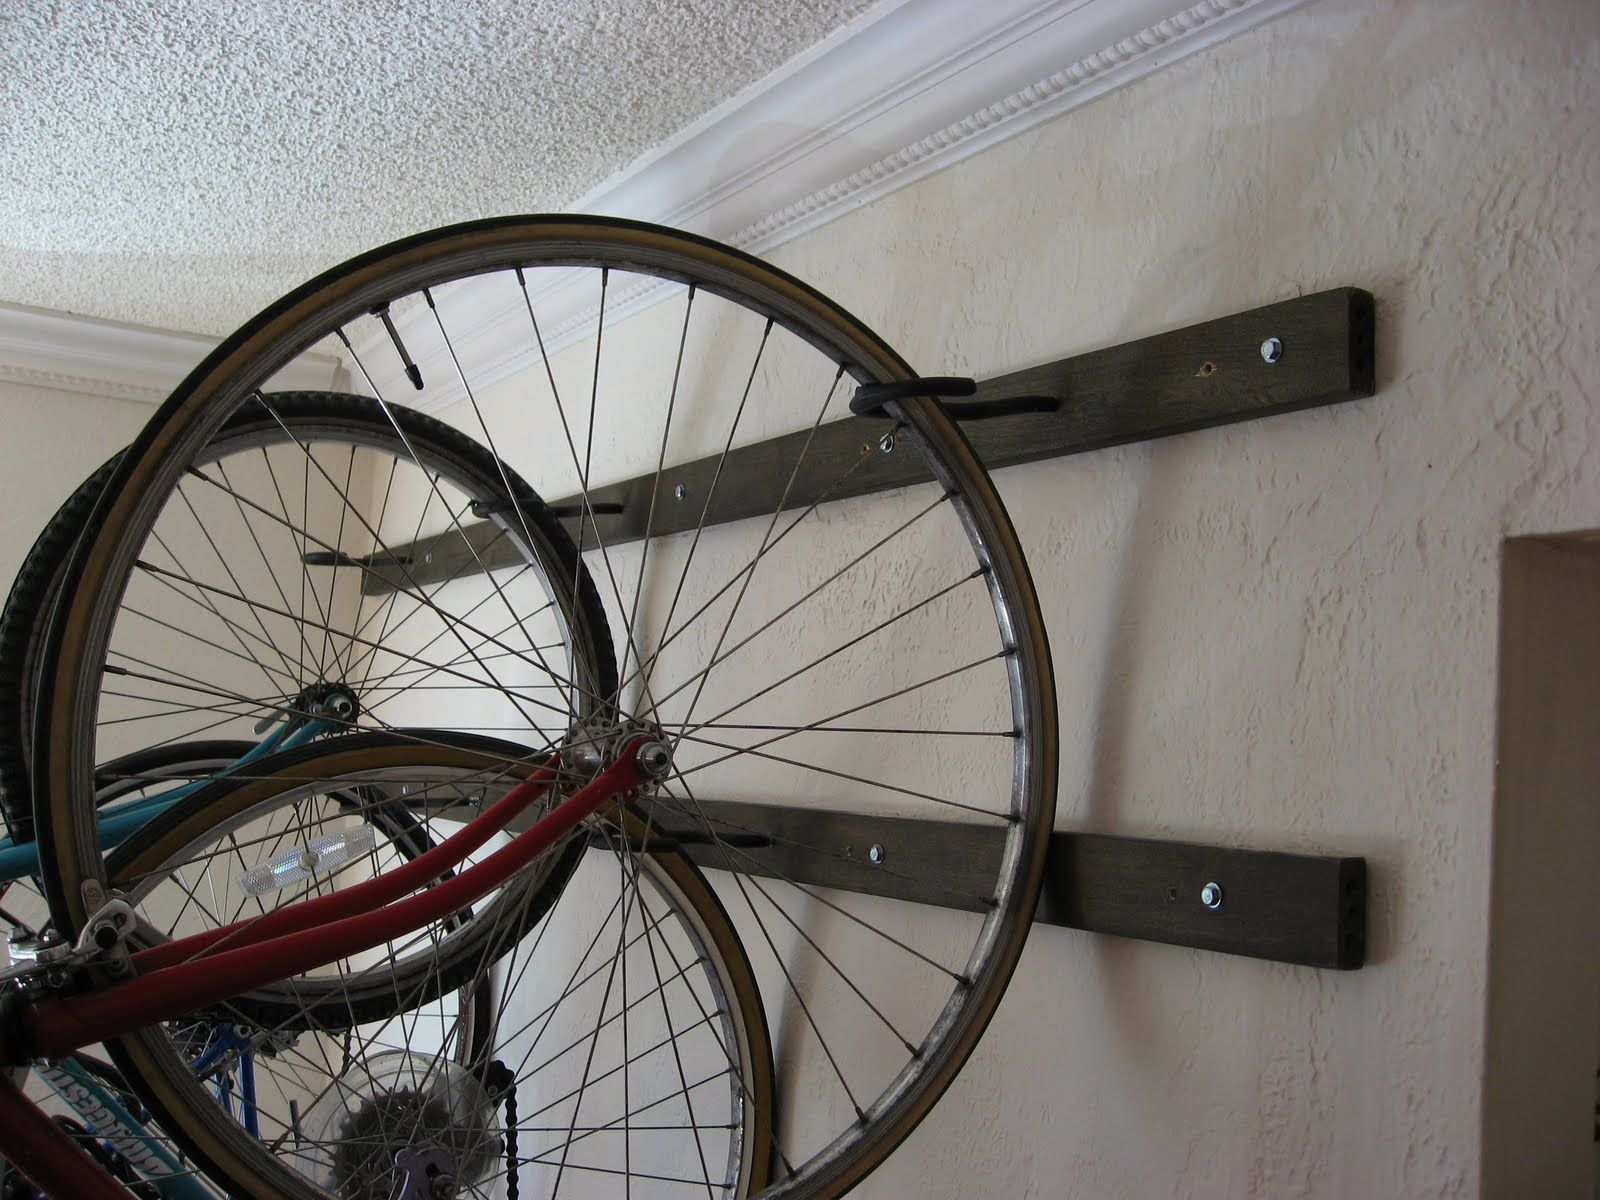 at home forums threads attachment ridemonkey bikes view bike in garage storage shed hang ideas